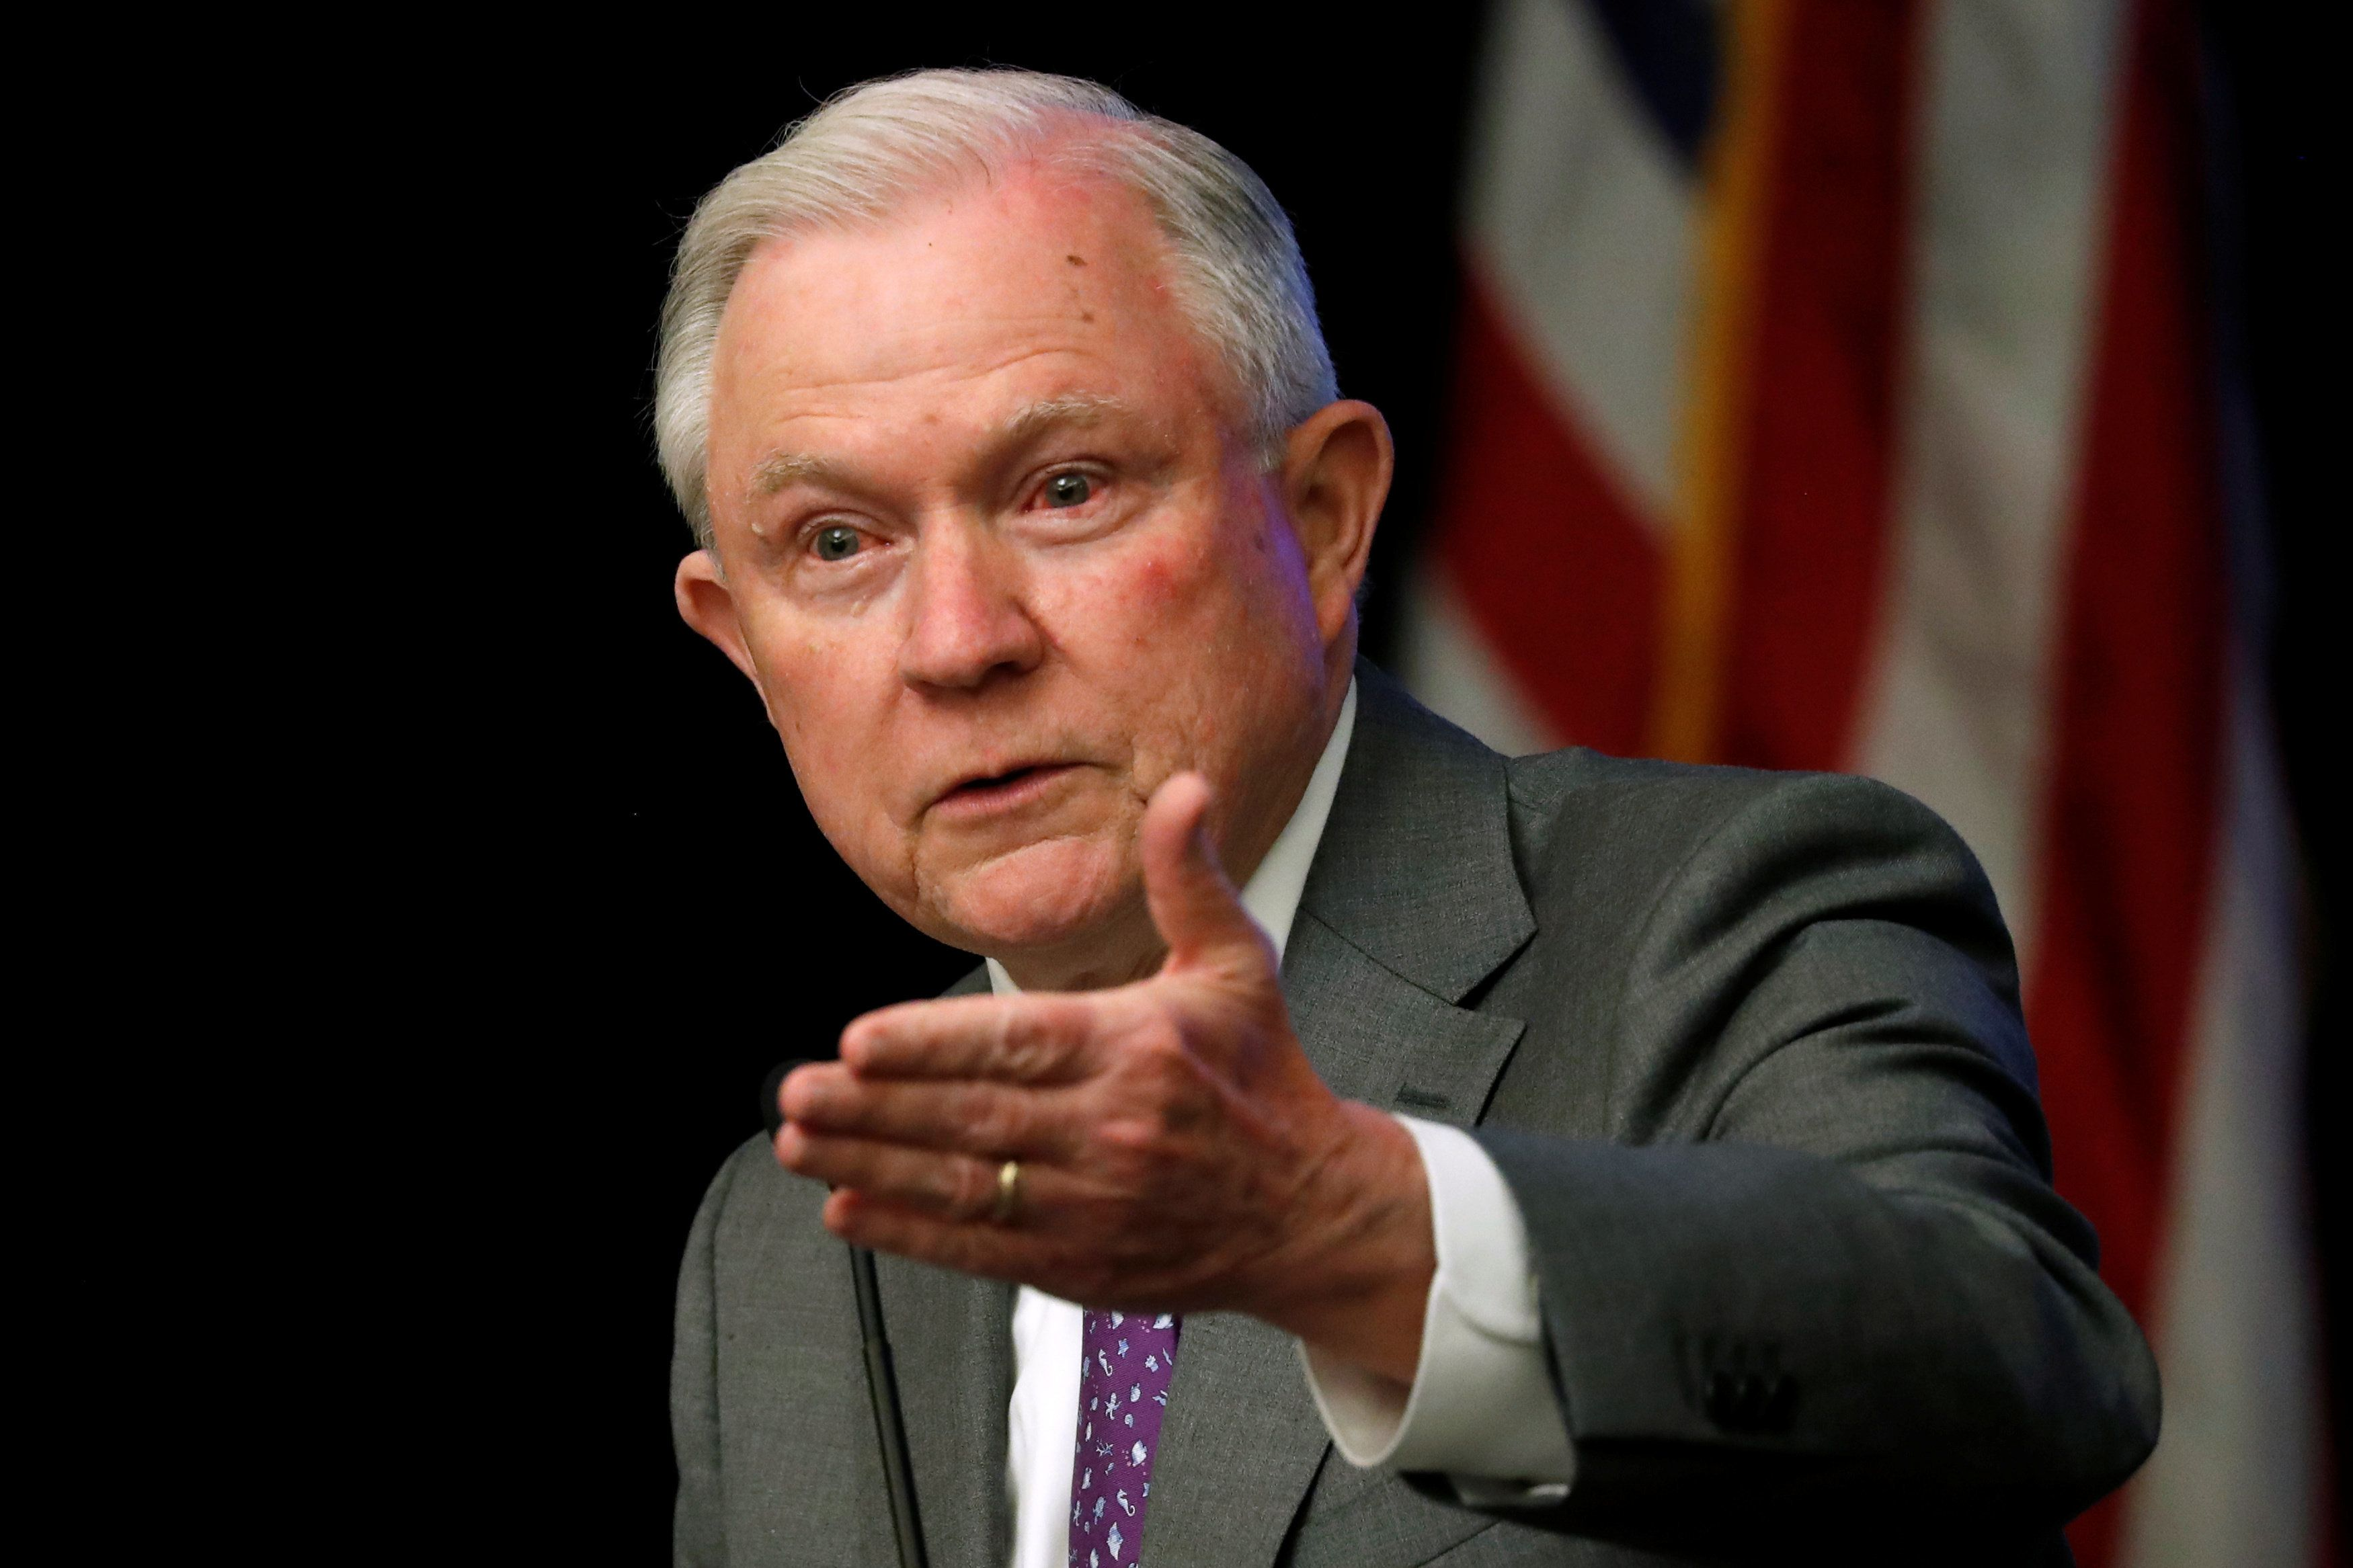 Methodists, prosecutors scold Sessions over border policy